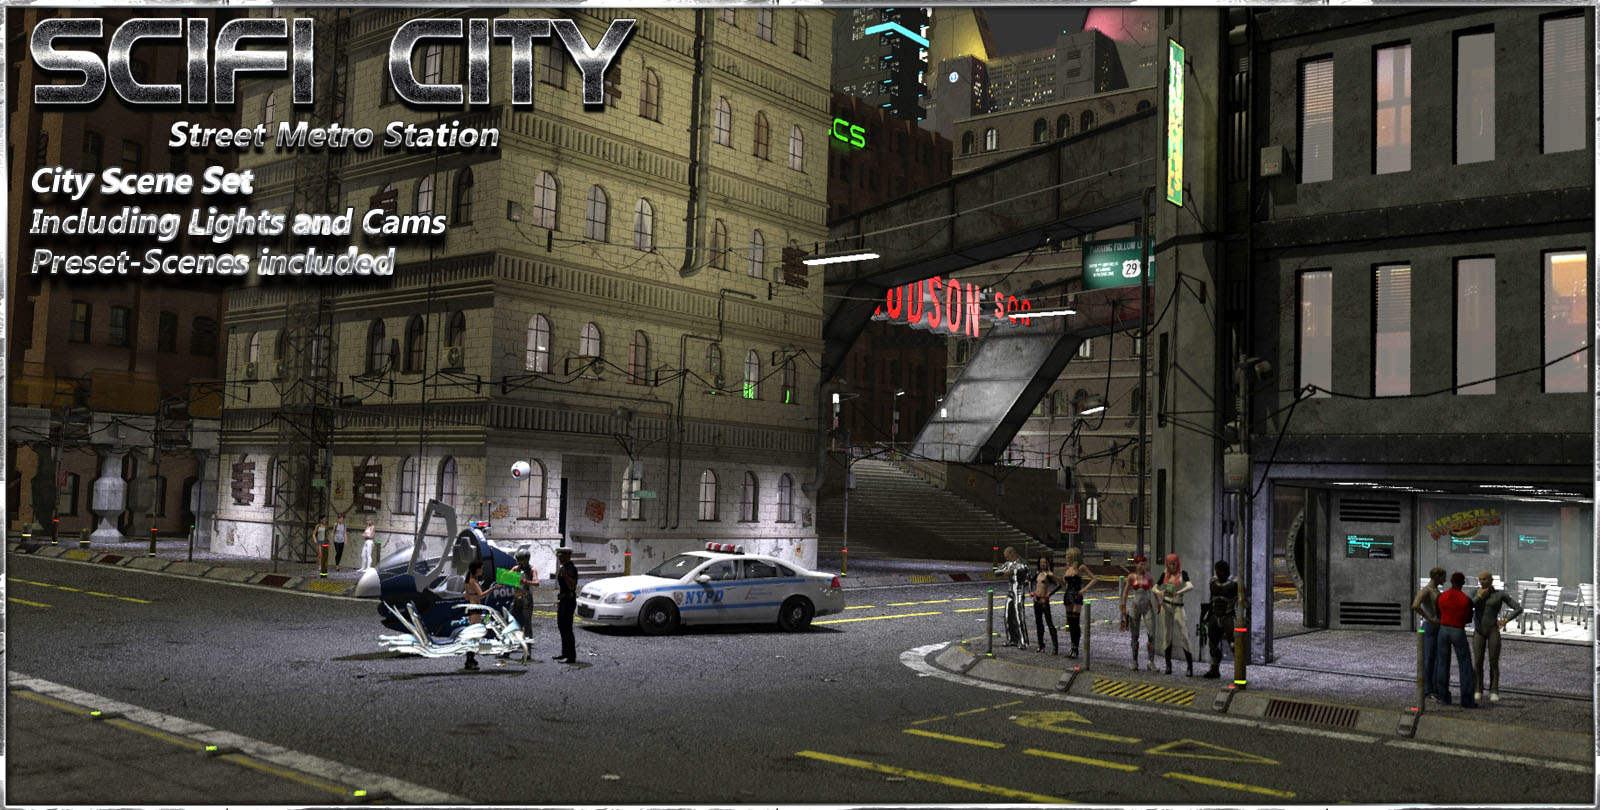 SciFi City Street Metro Scene by 3-D-C